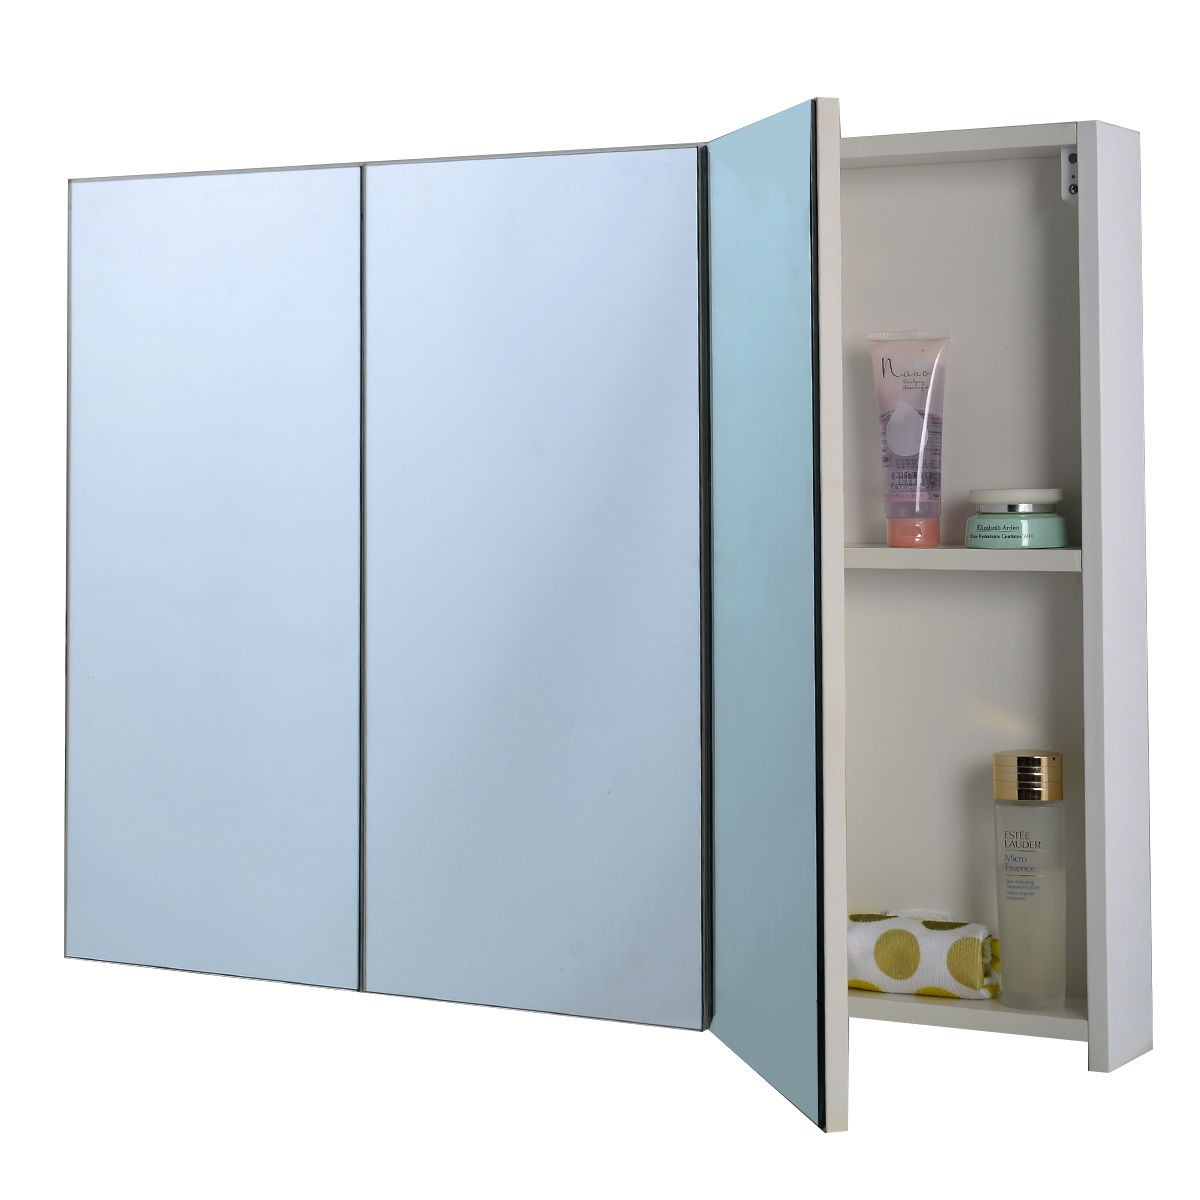 3 mirror door 36 20 wide wall mount mirrored bathroom - Large medicine cabinet mirror bathroom ...